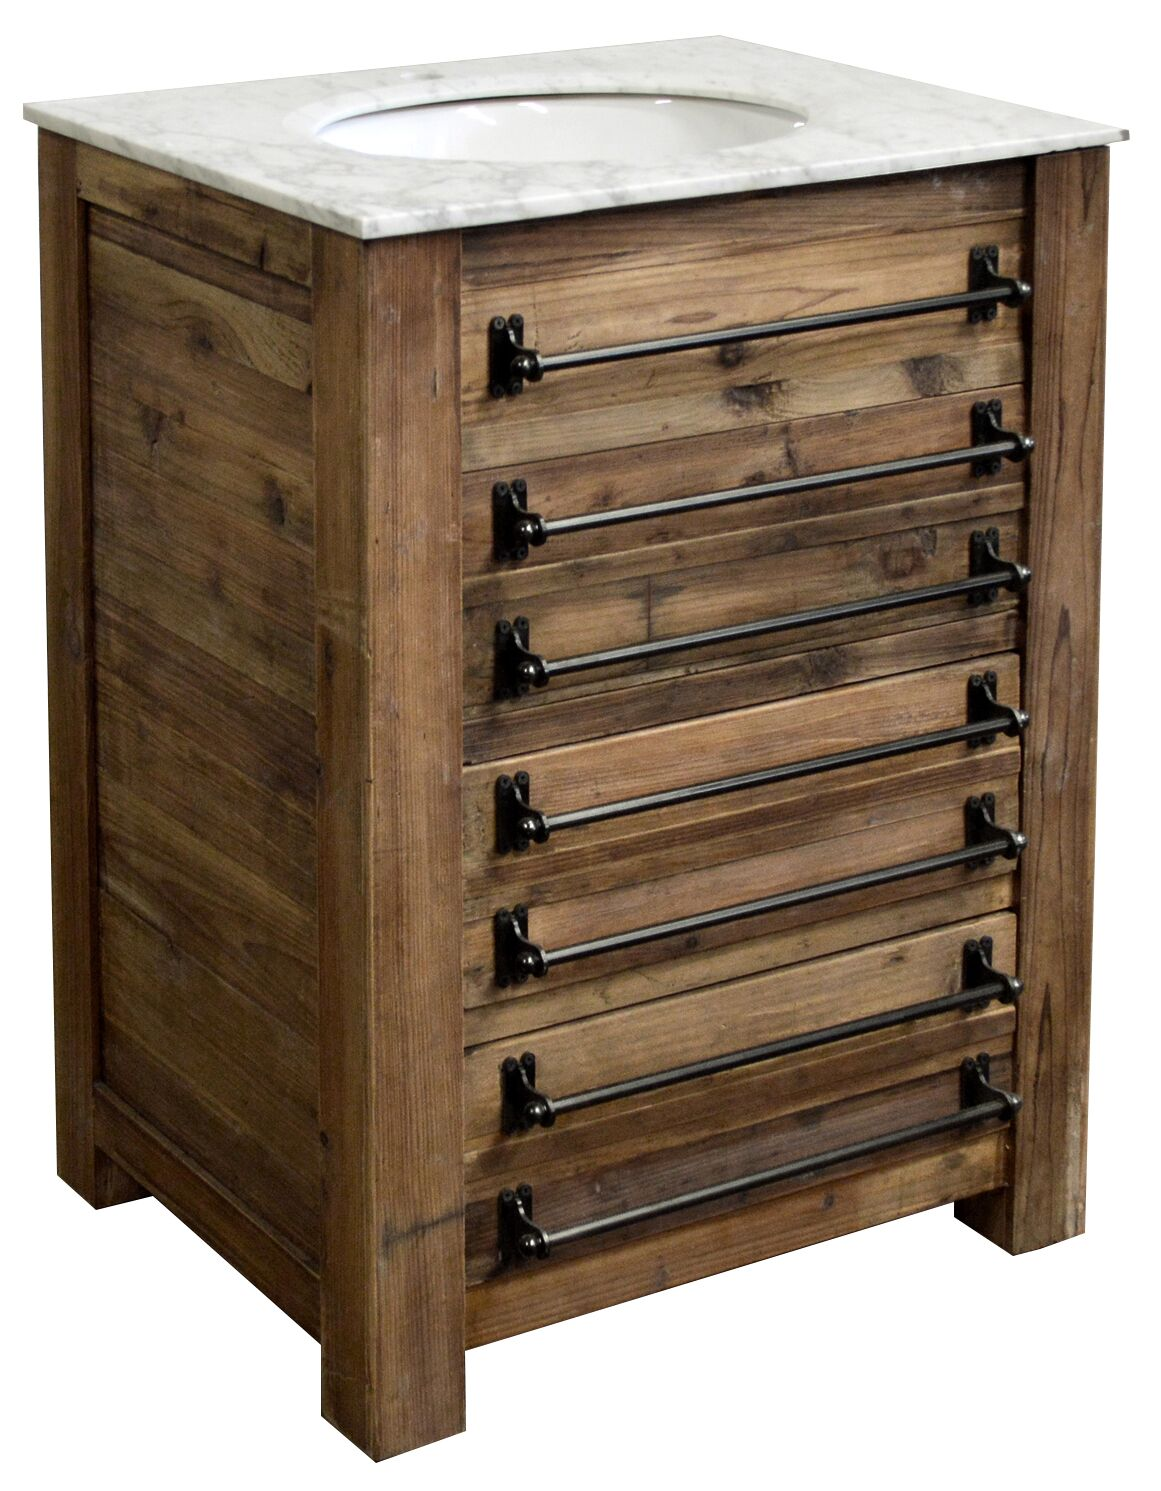 "26.5"" Handcrafted Reclaimed Pine Solid Wood Single Bath Vanity"